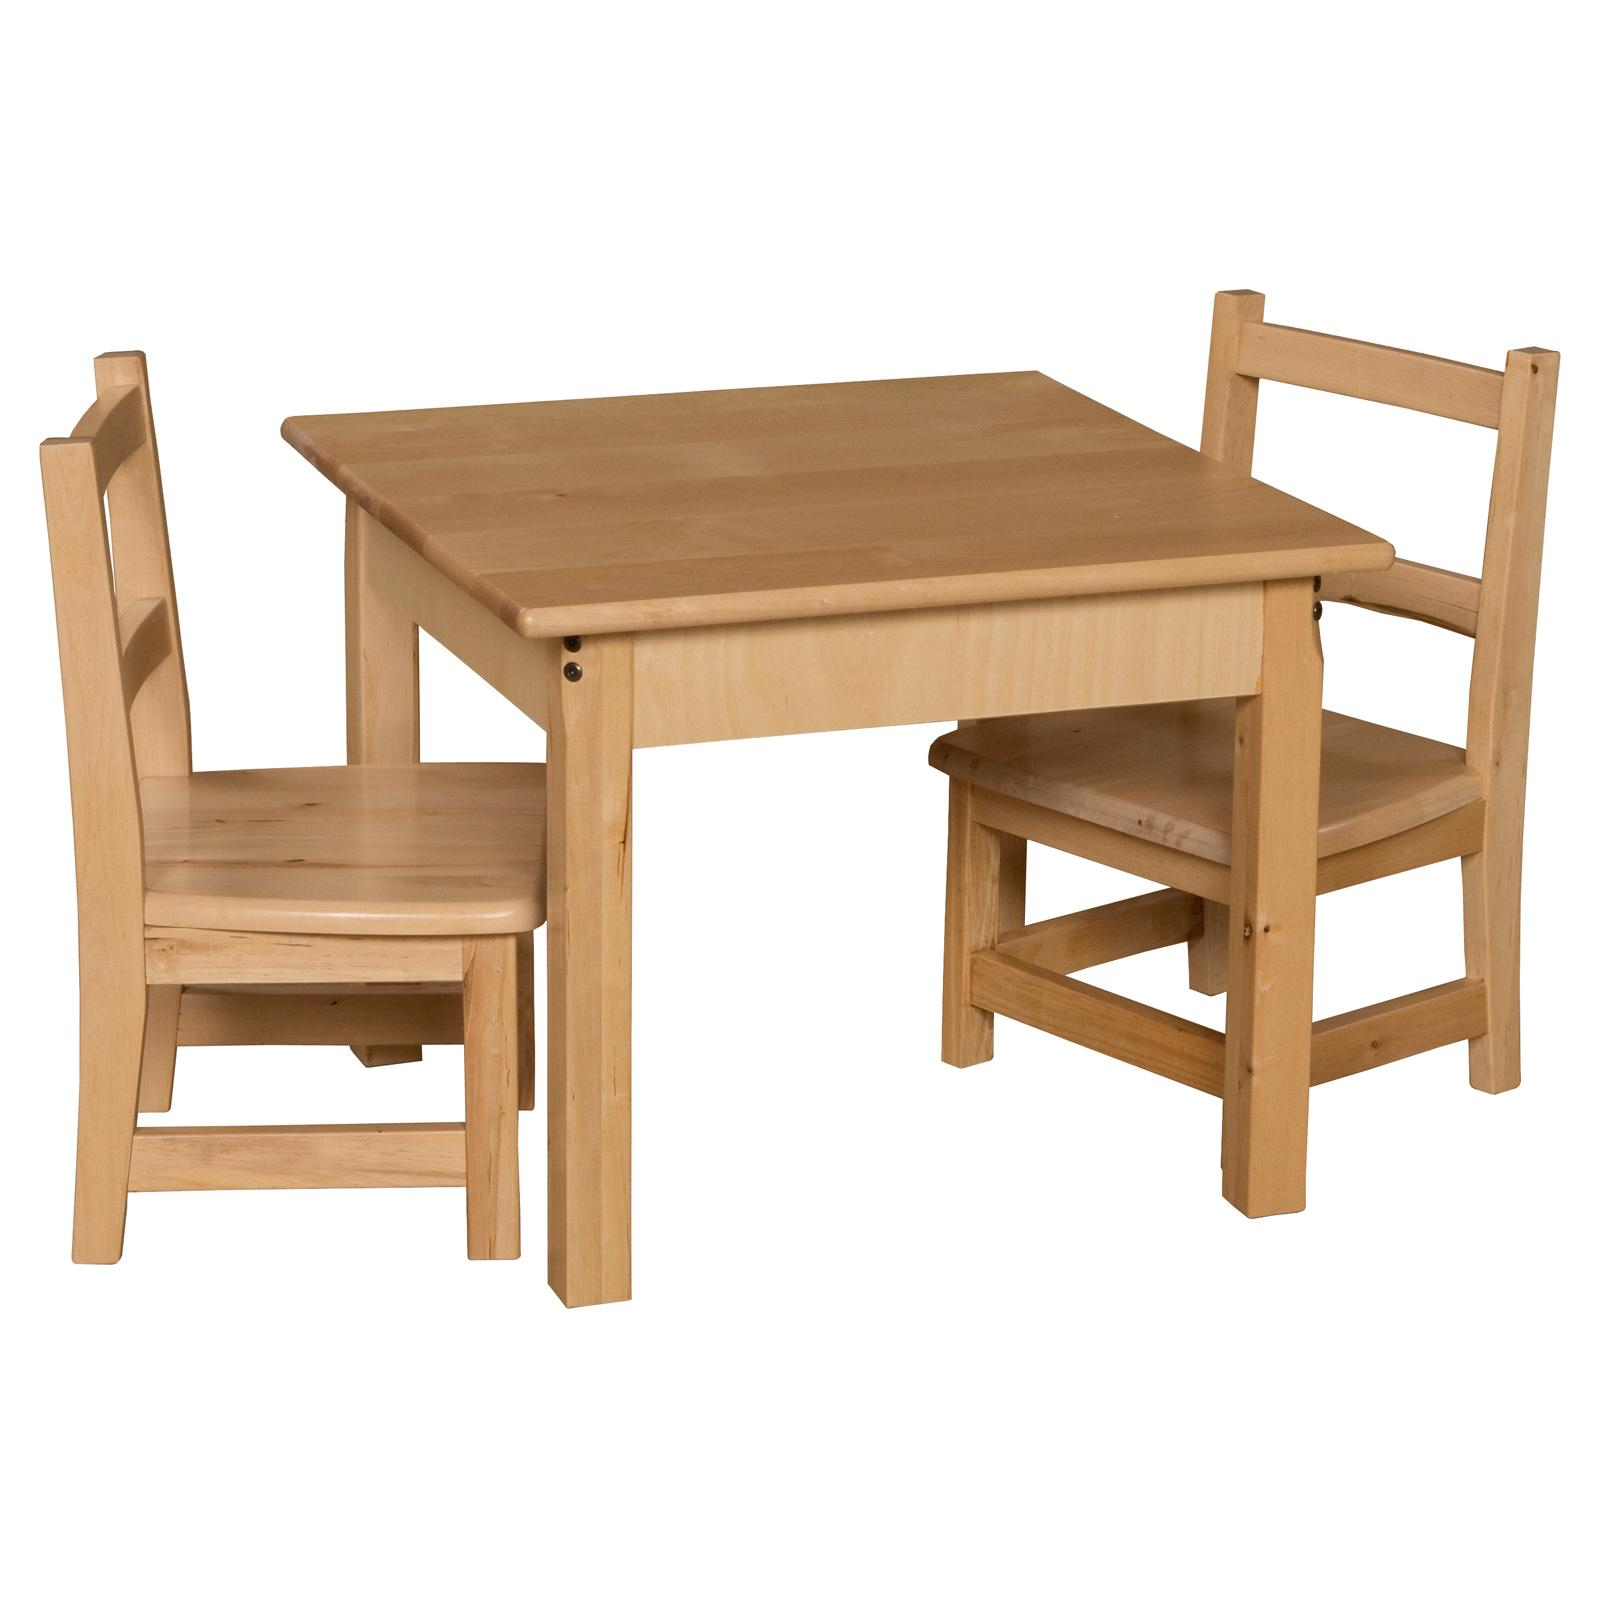 Wood Designs Square Table and Chair Set - WDM255-3